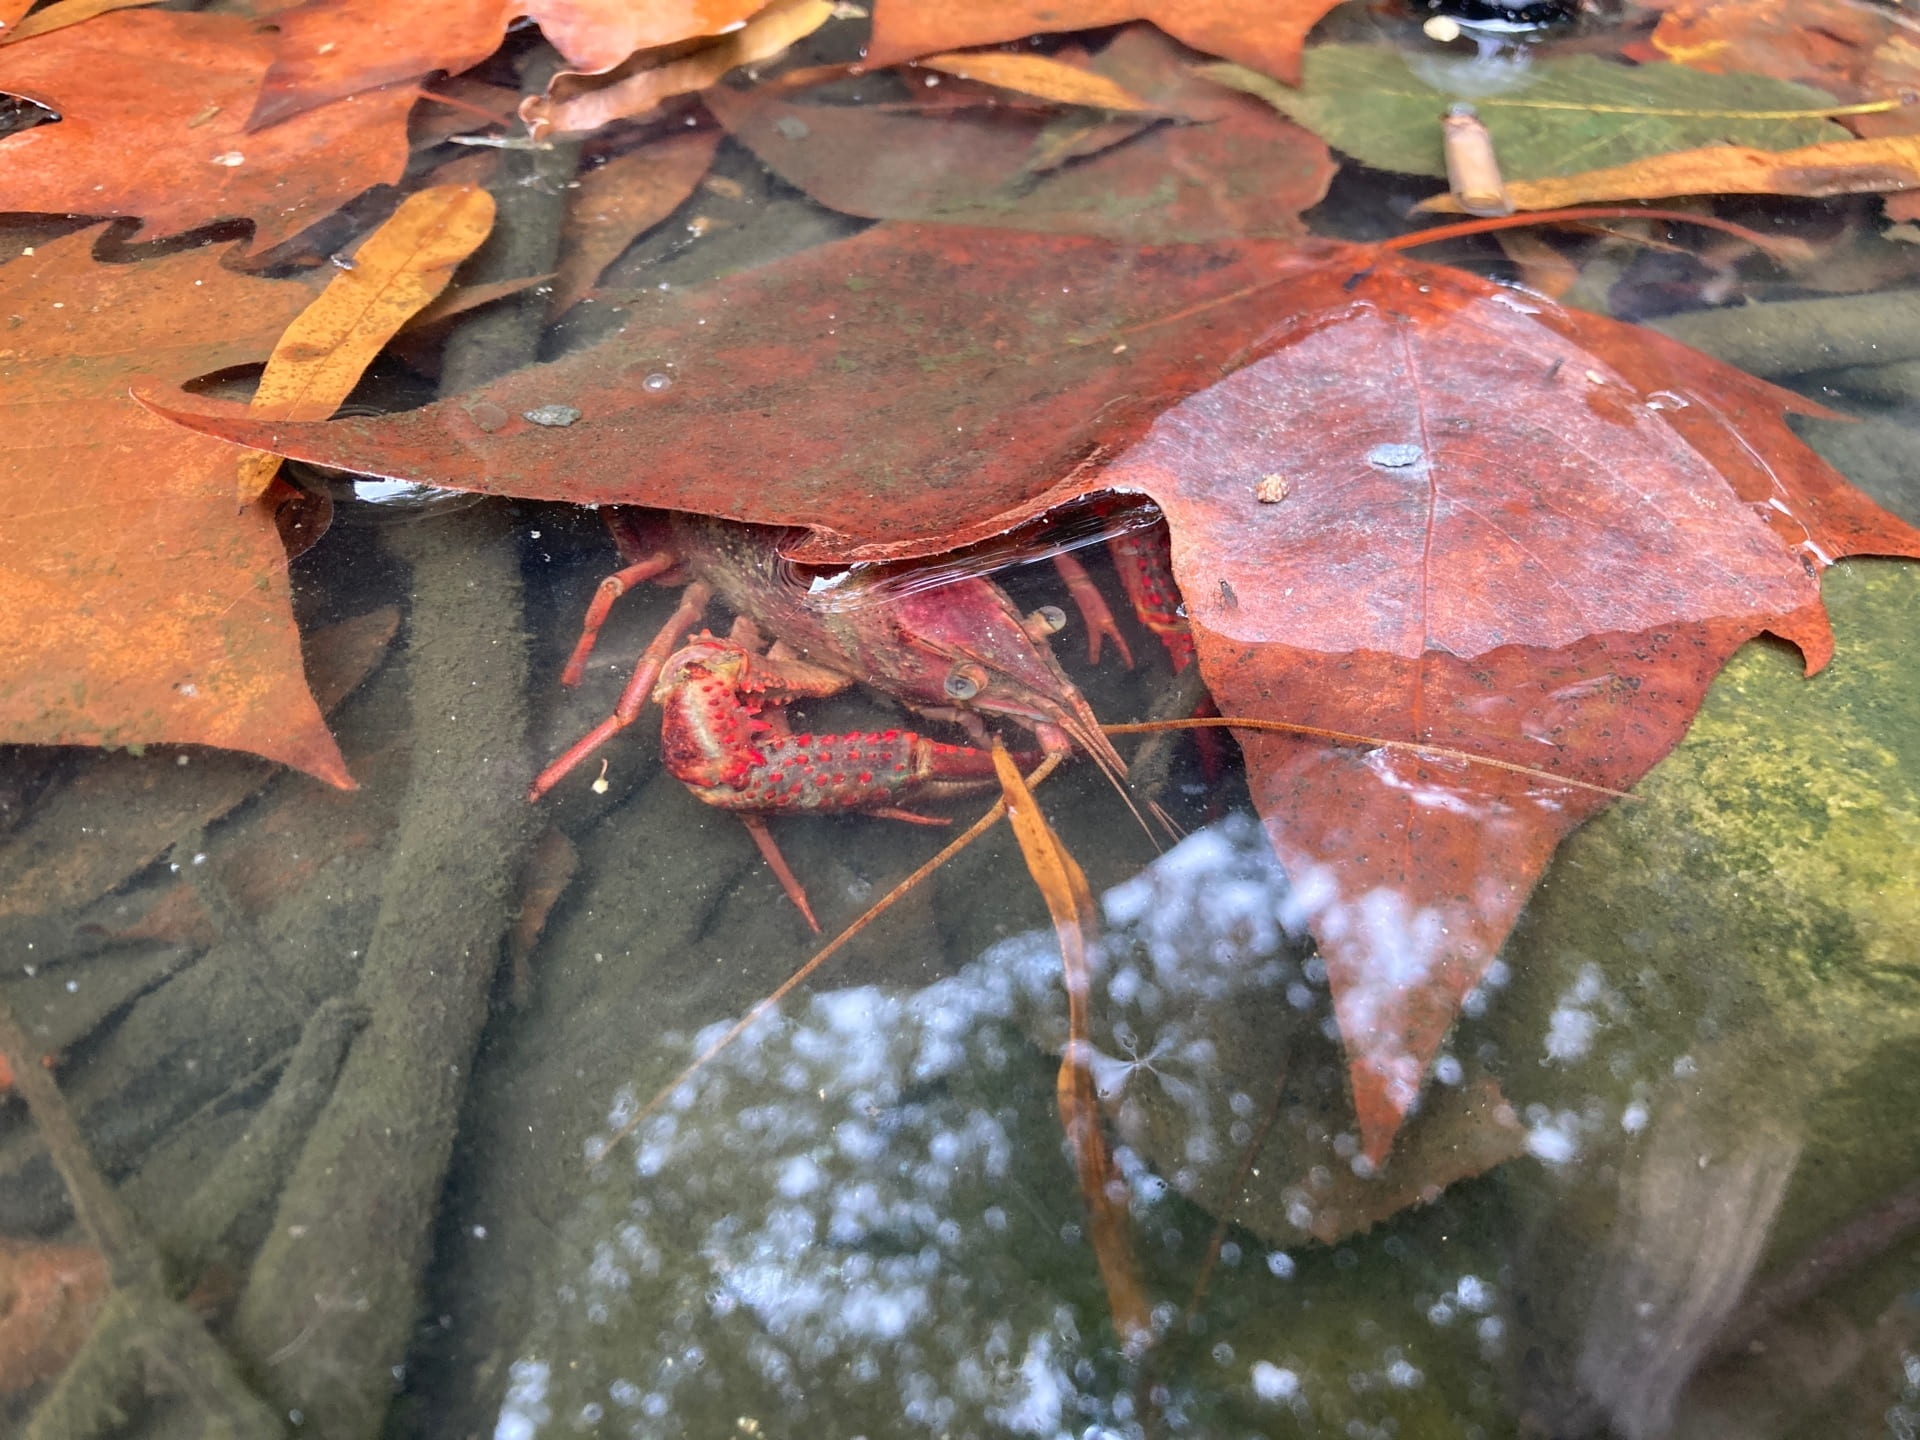 In the pond a cray fish tries to hide under a leaf.